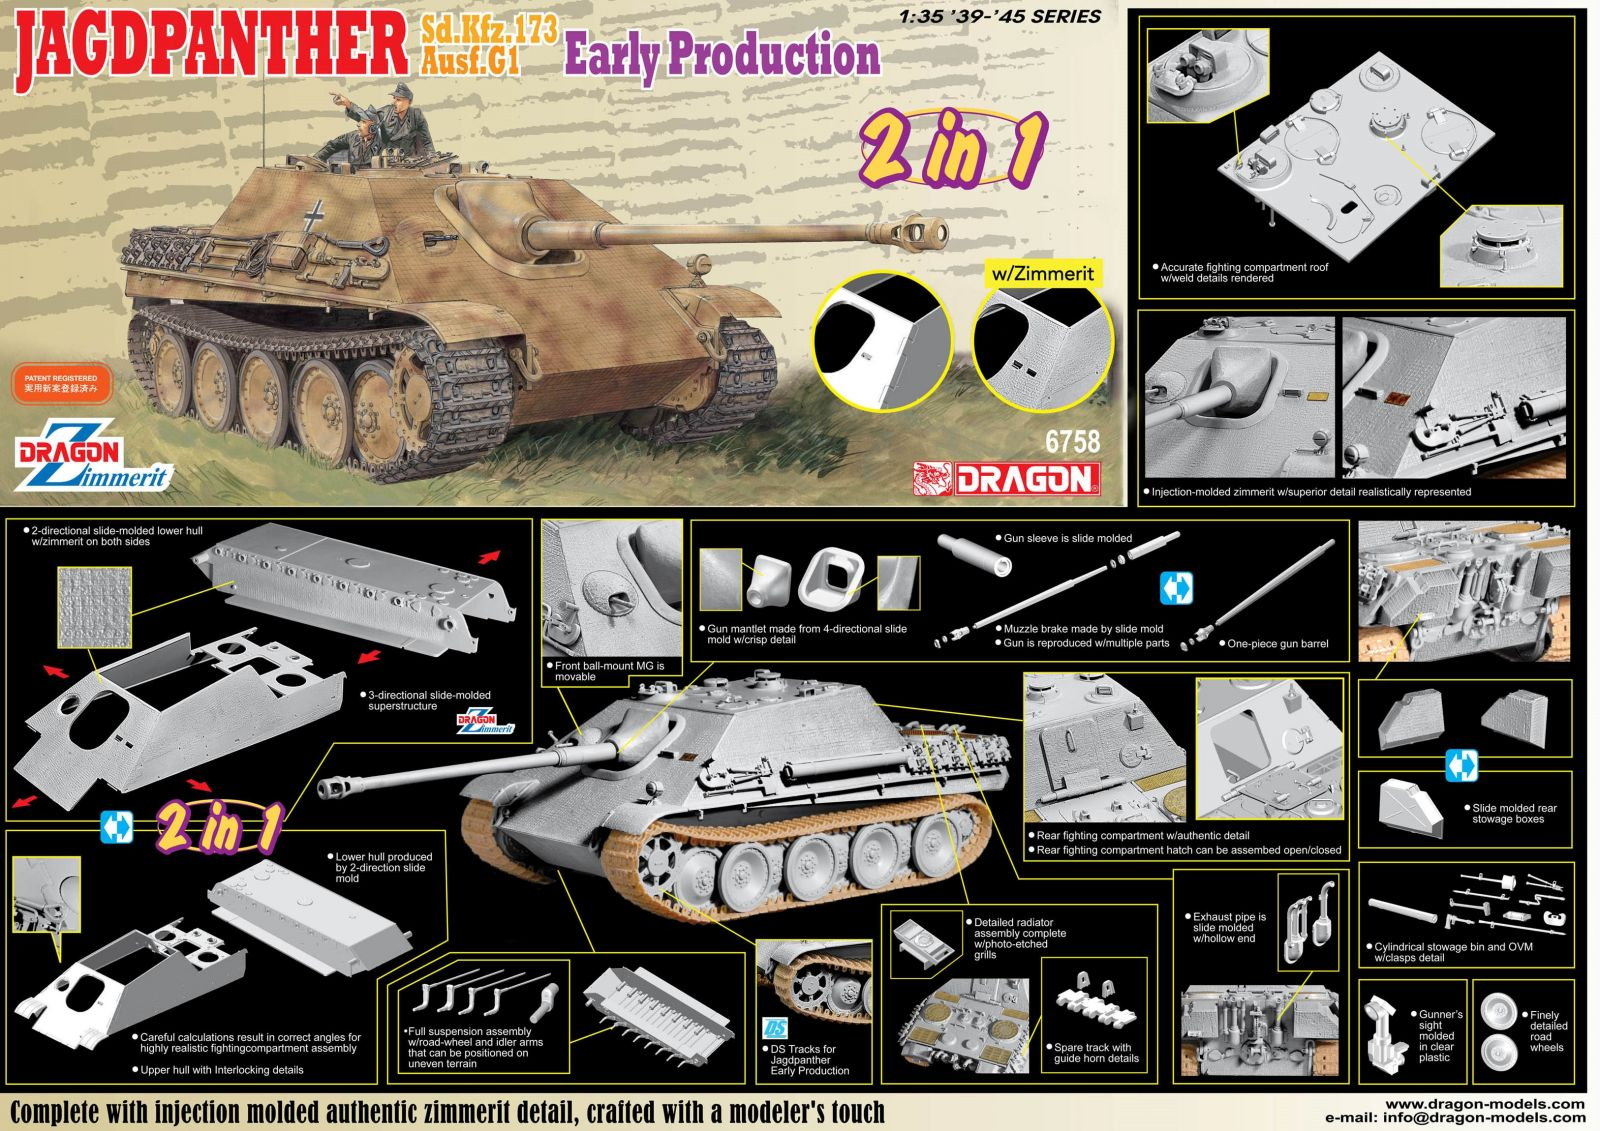 1-35-jagdpanther-early-production-2-in-1-0.jpg.big.jpg